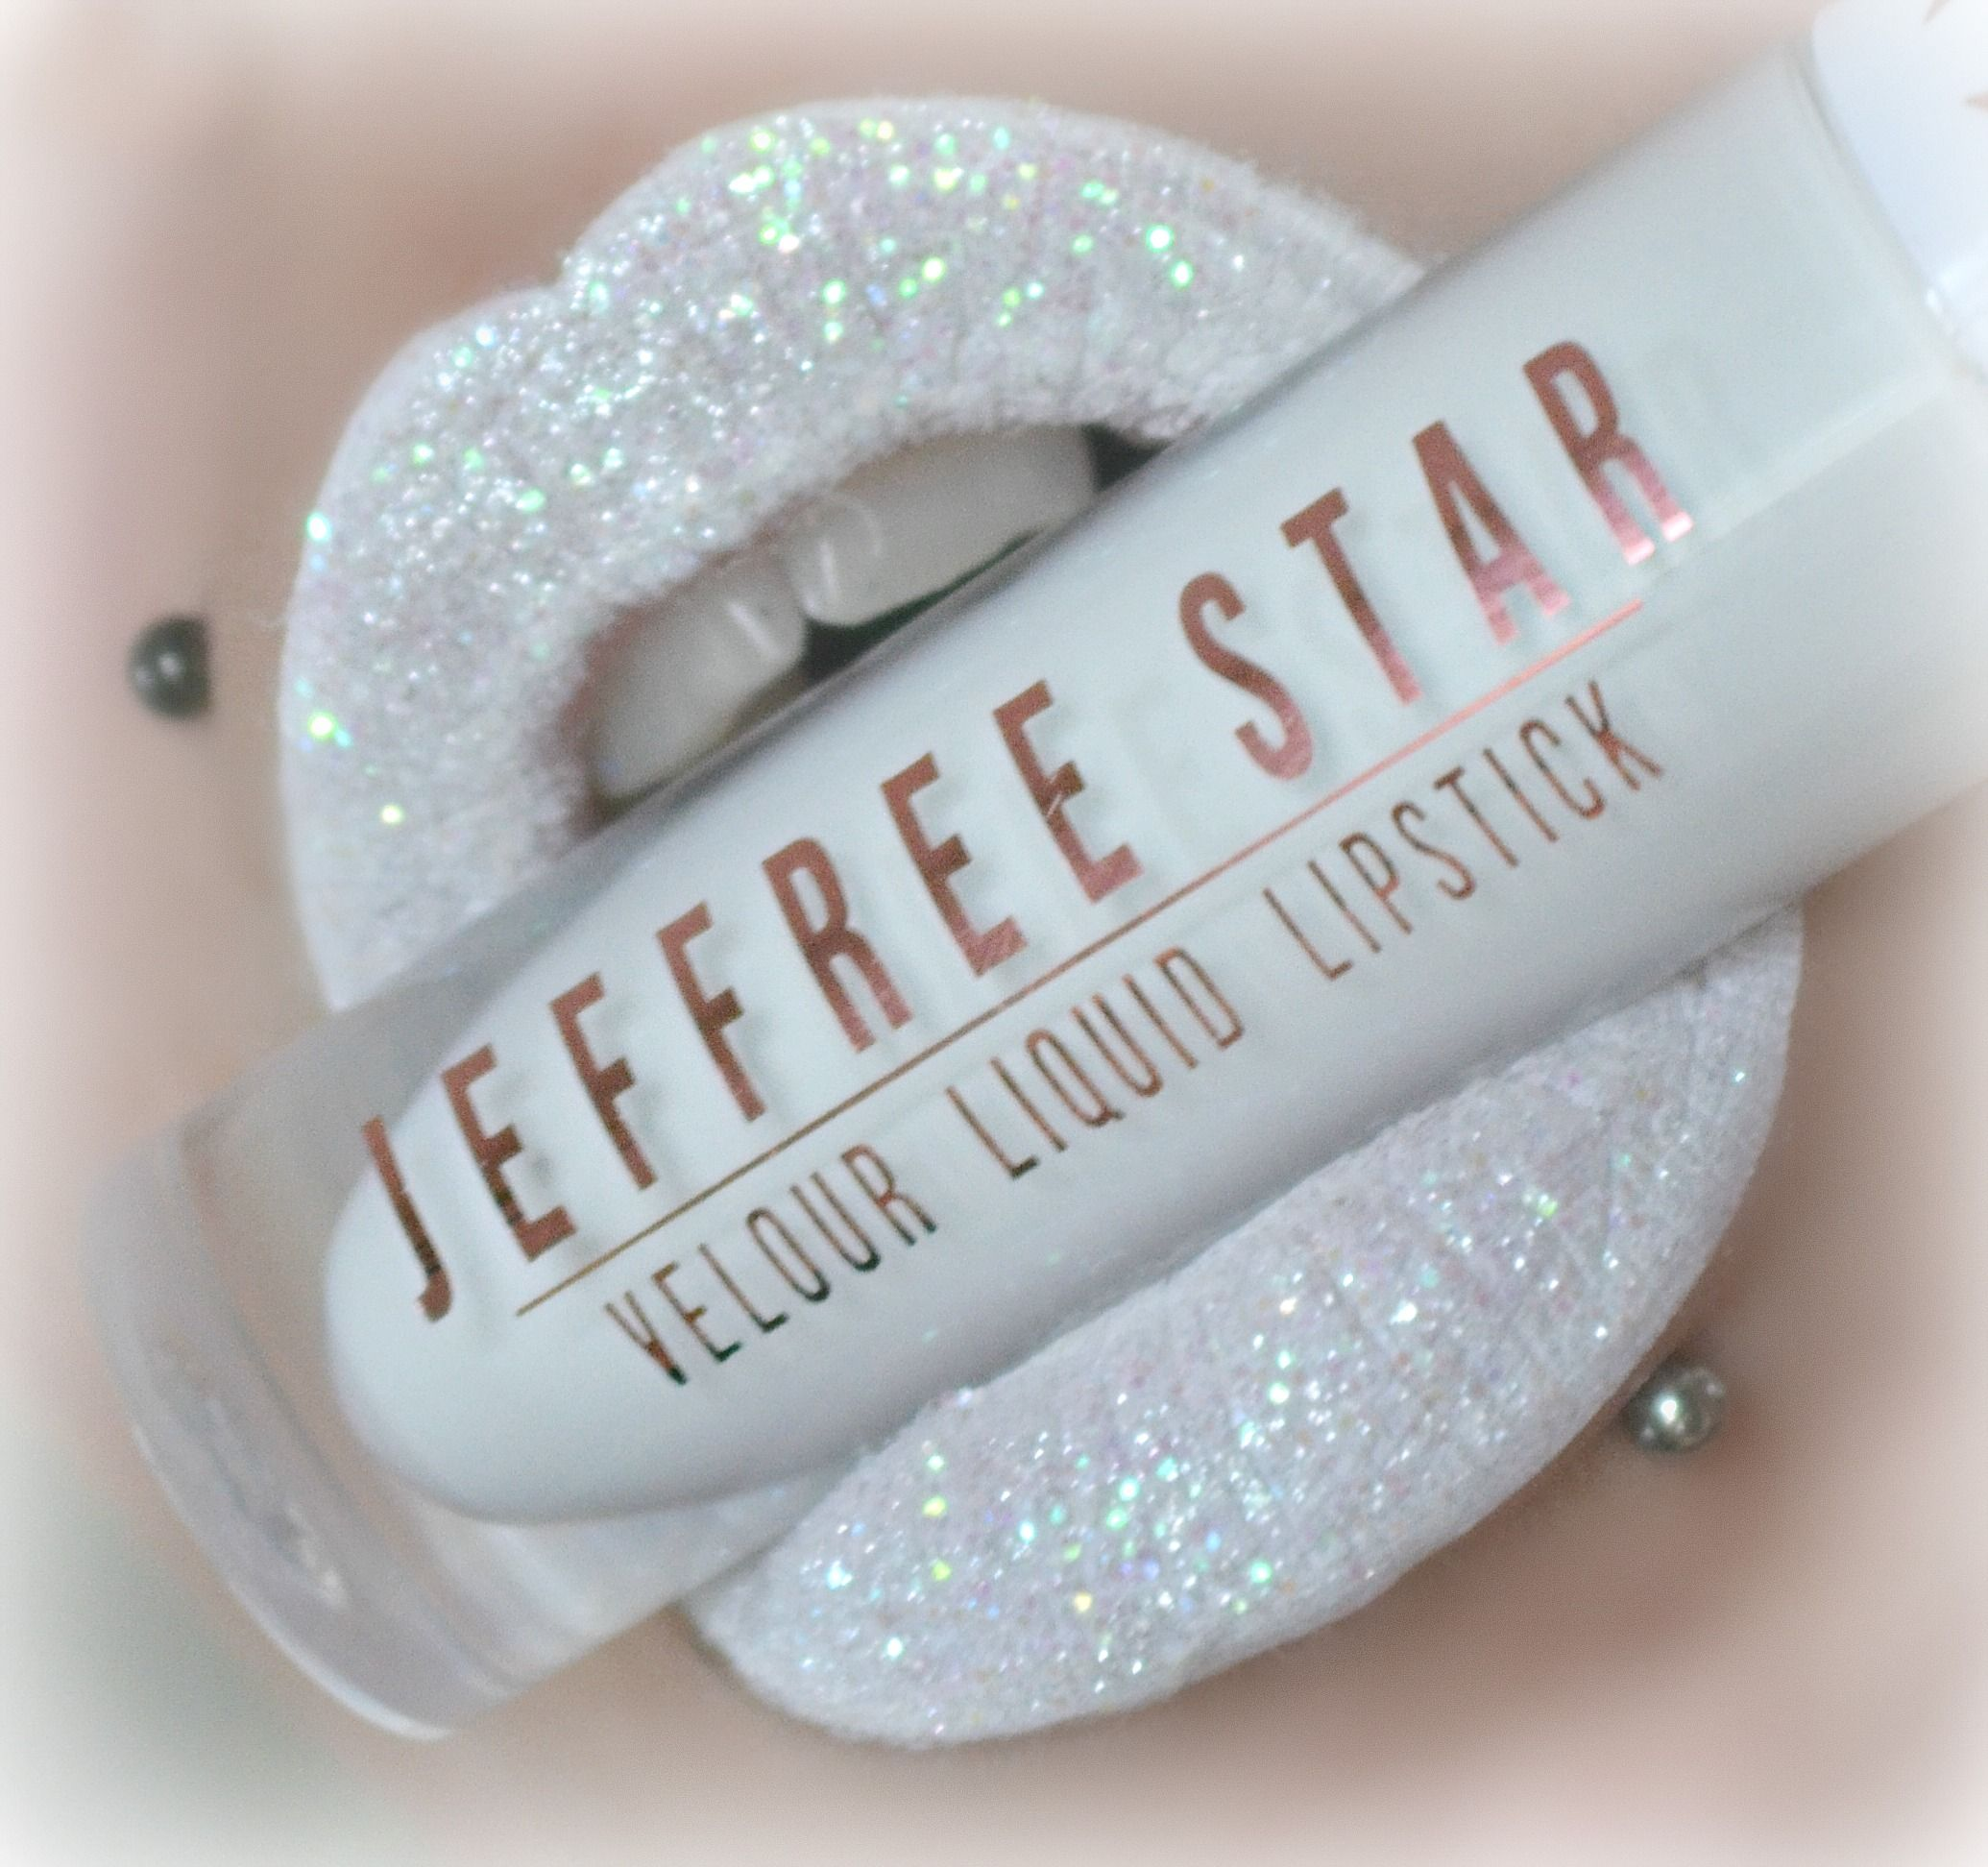 Jeffree Star Cosmetics swatch in 'drug lord' with glitter :D